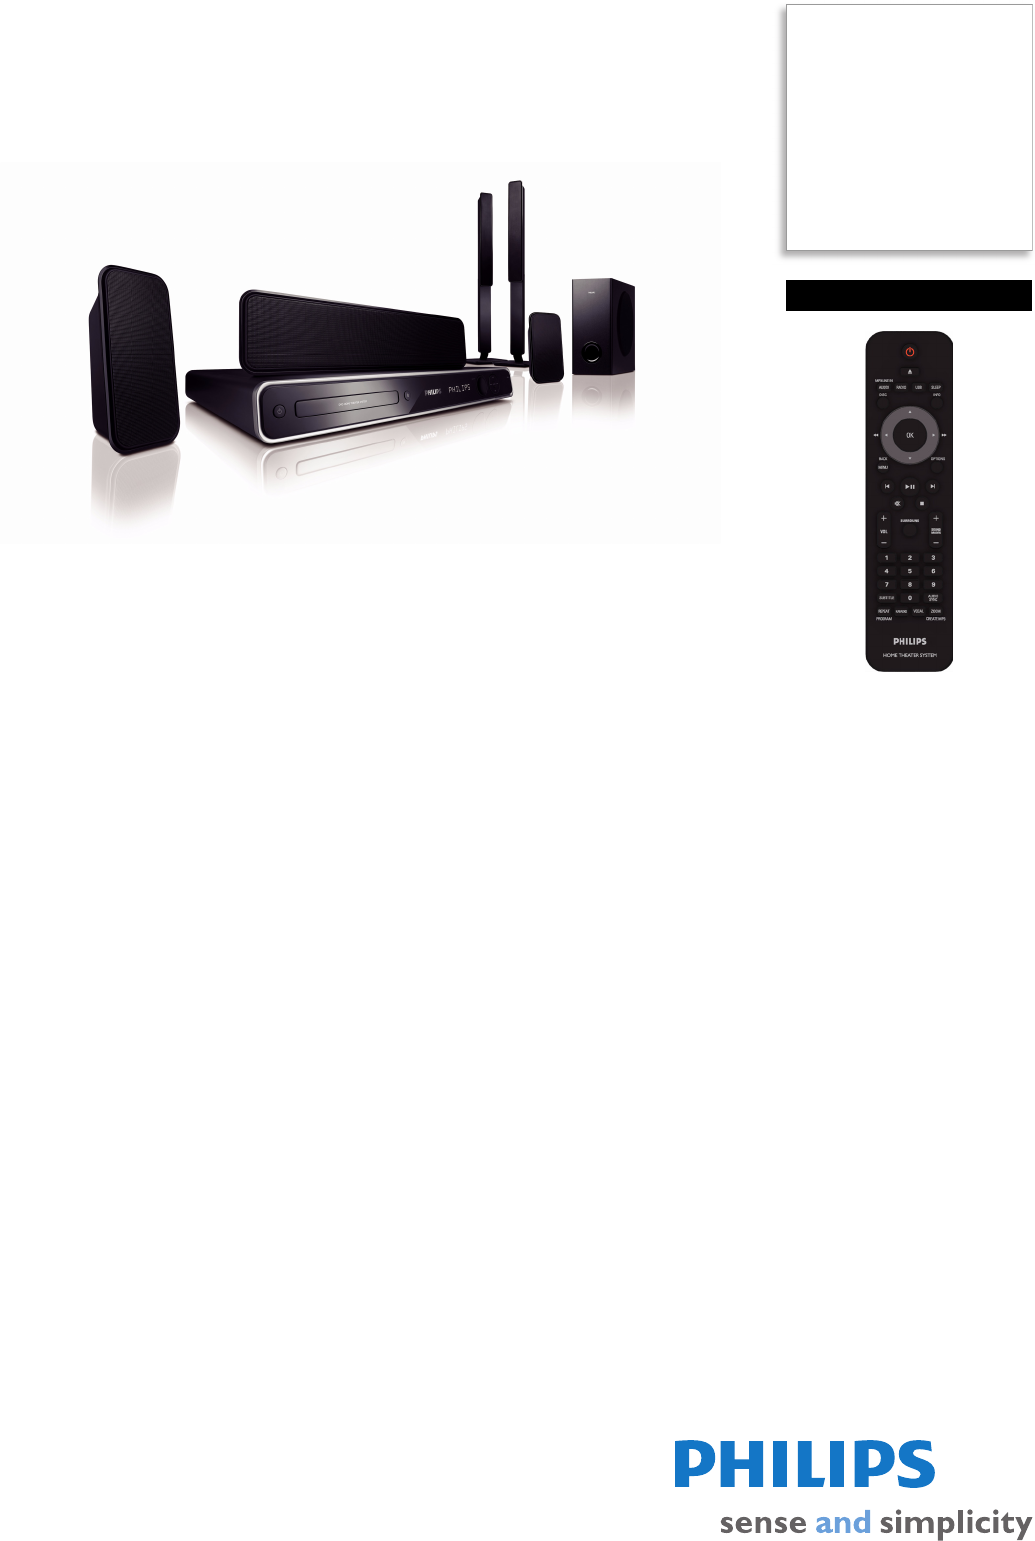 philips home theater system hts3366 98 user guide manualsonline com rh manualsonline com Philips Phone Systems VTech Home Phone